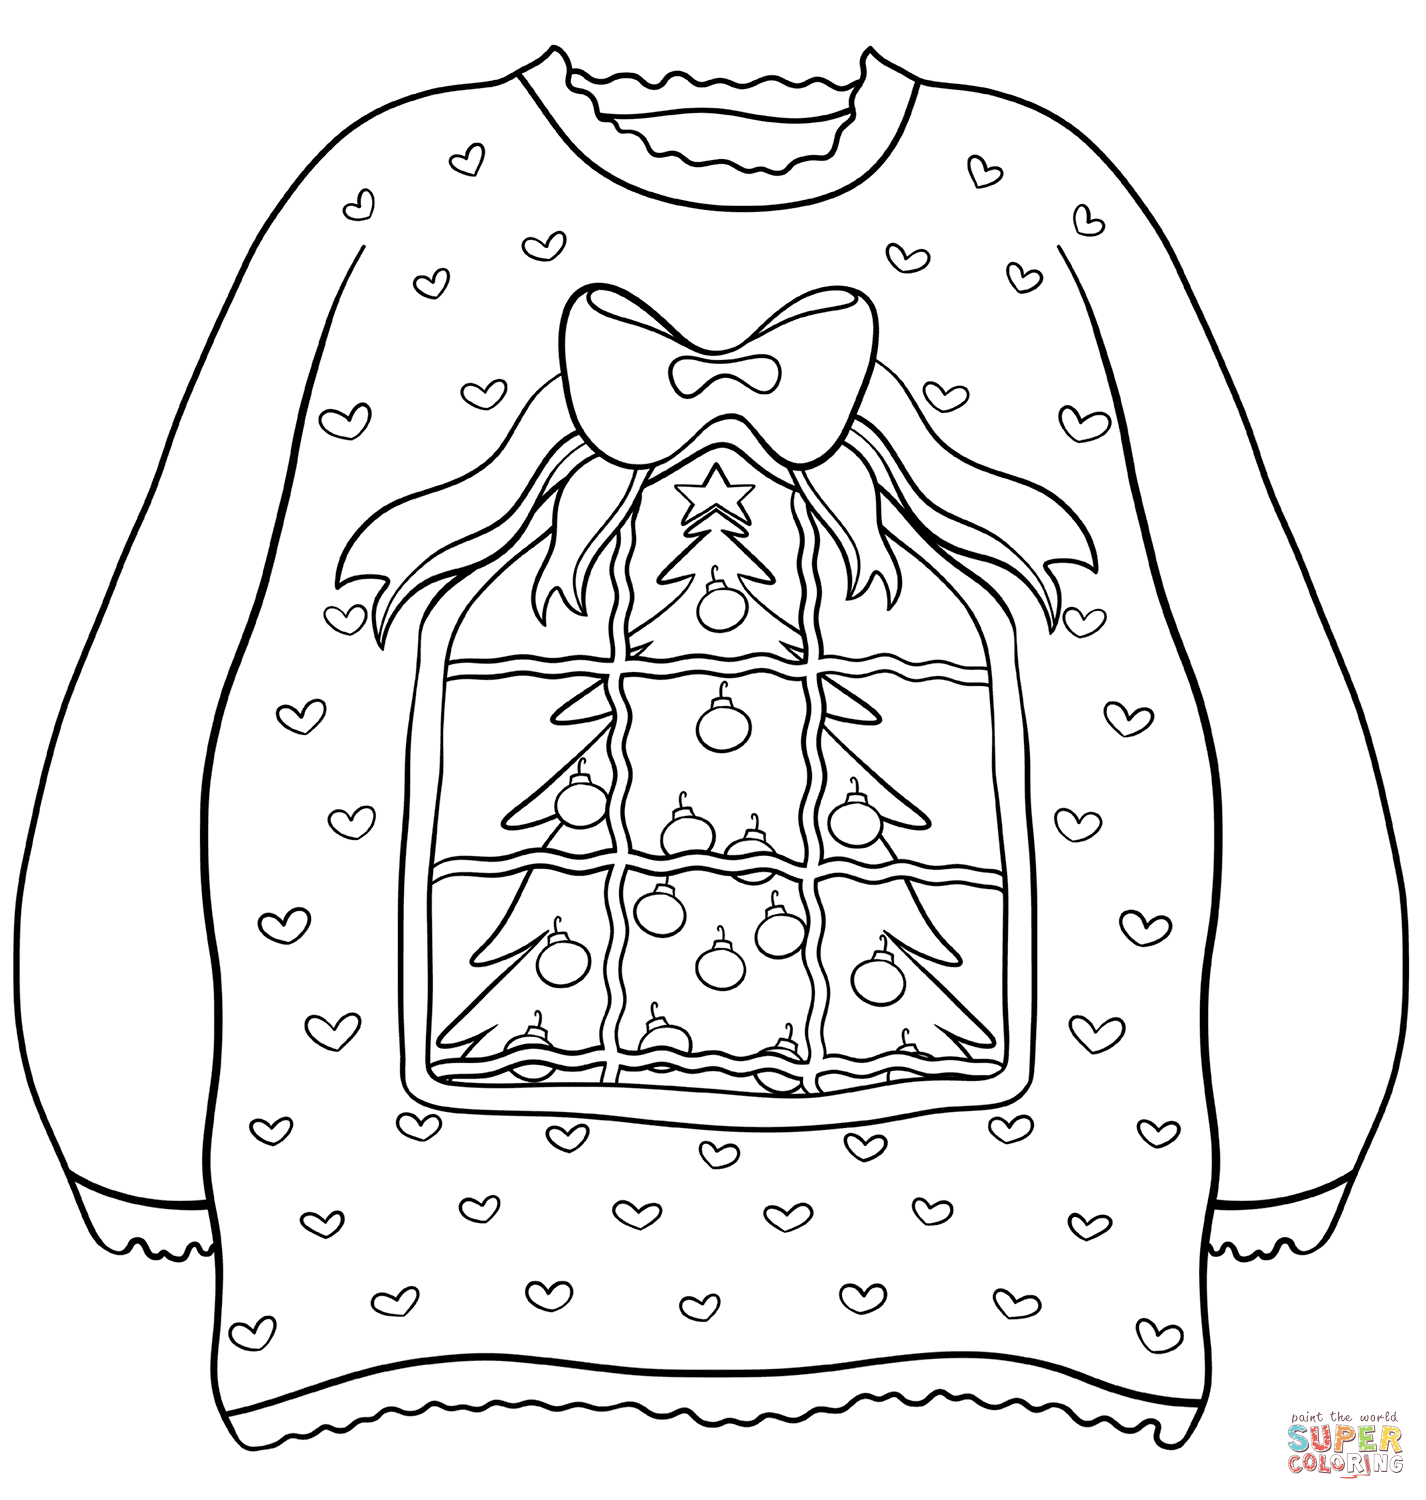 Sweater With Christmas Tree Super Coloring Christmas Tree Coloring Page Tree Coloring Page Christmas Coloring Pages